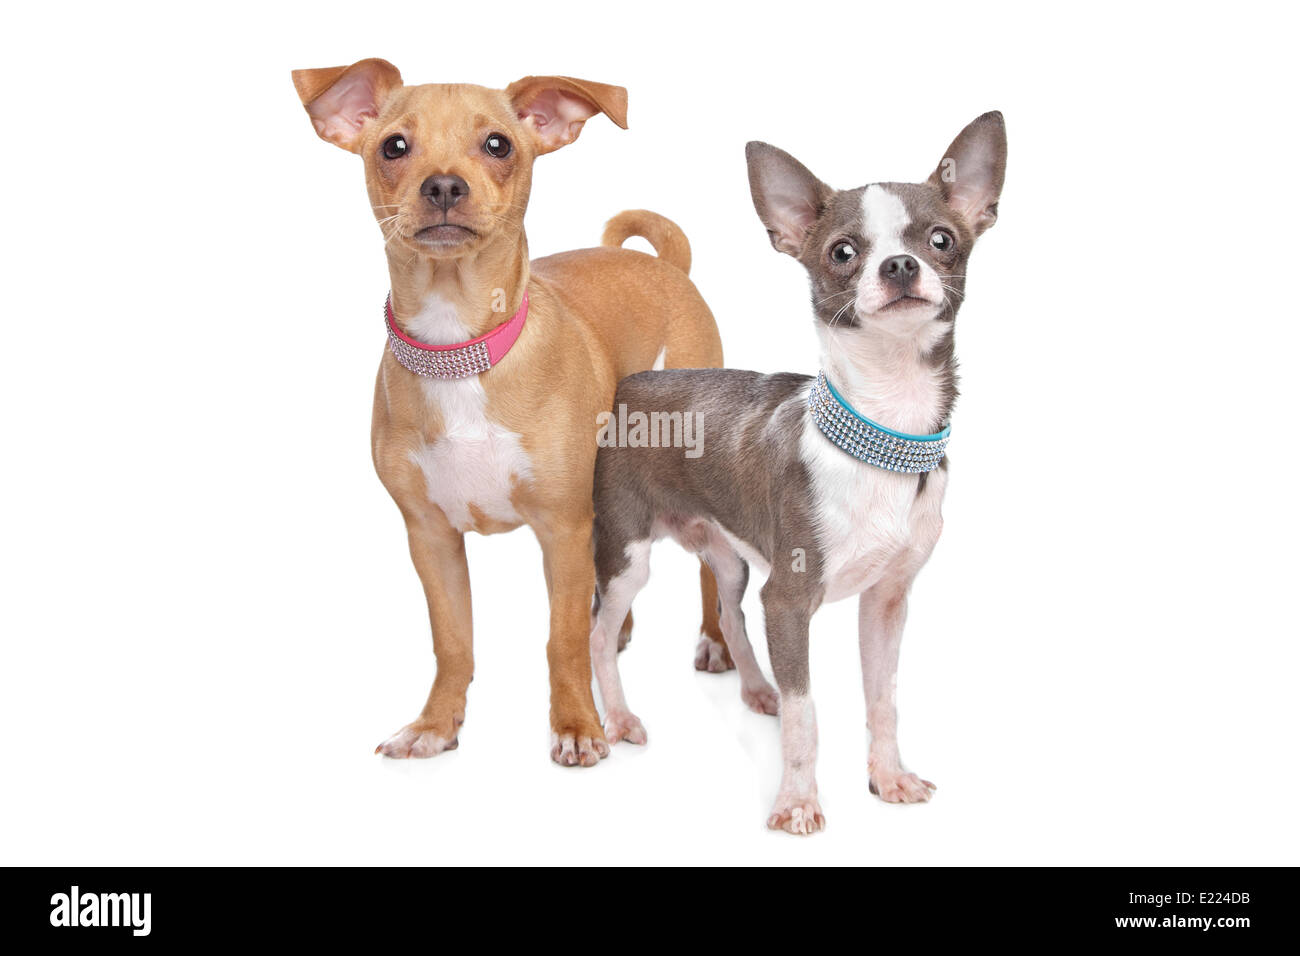 chihuahua and a mix miniature pincher - Stock Image